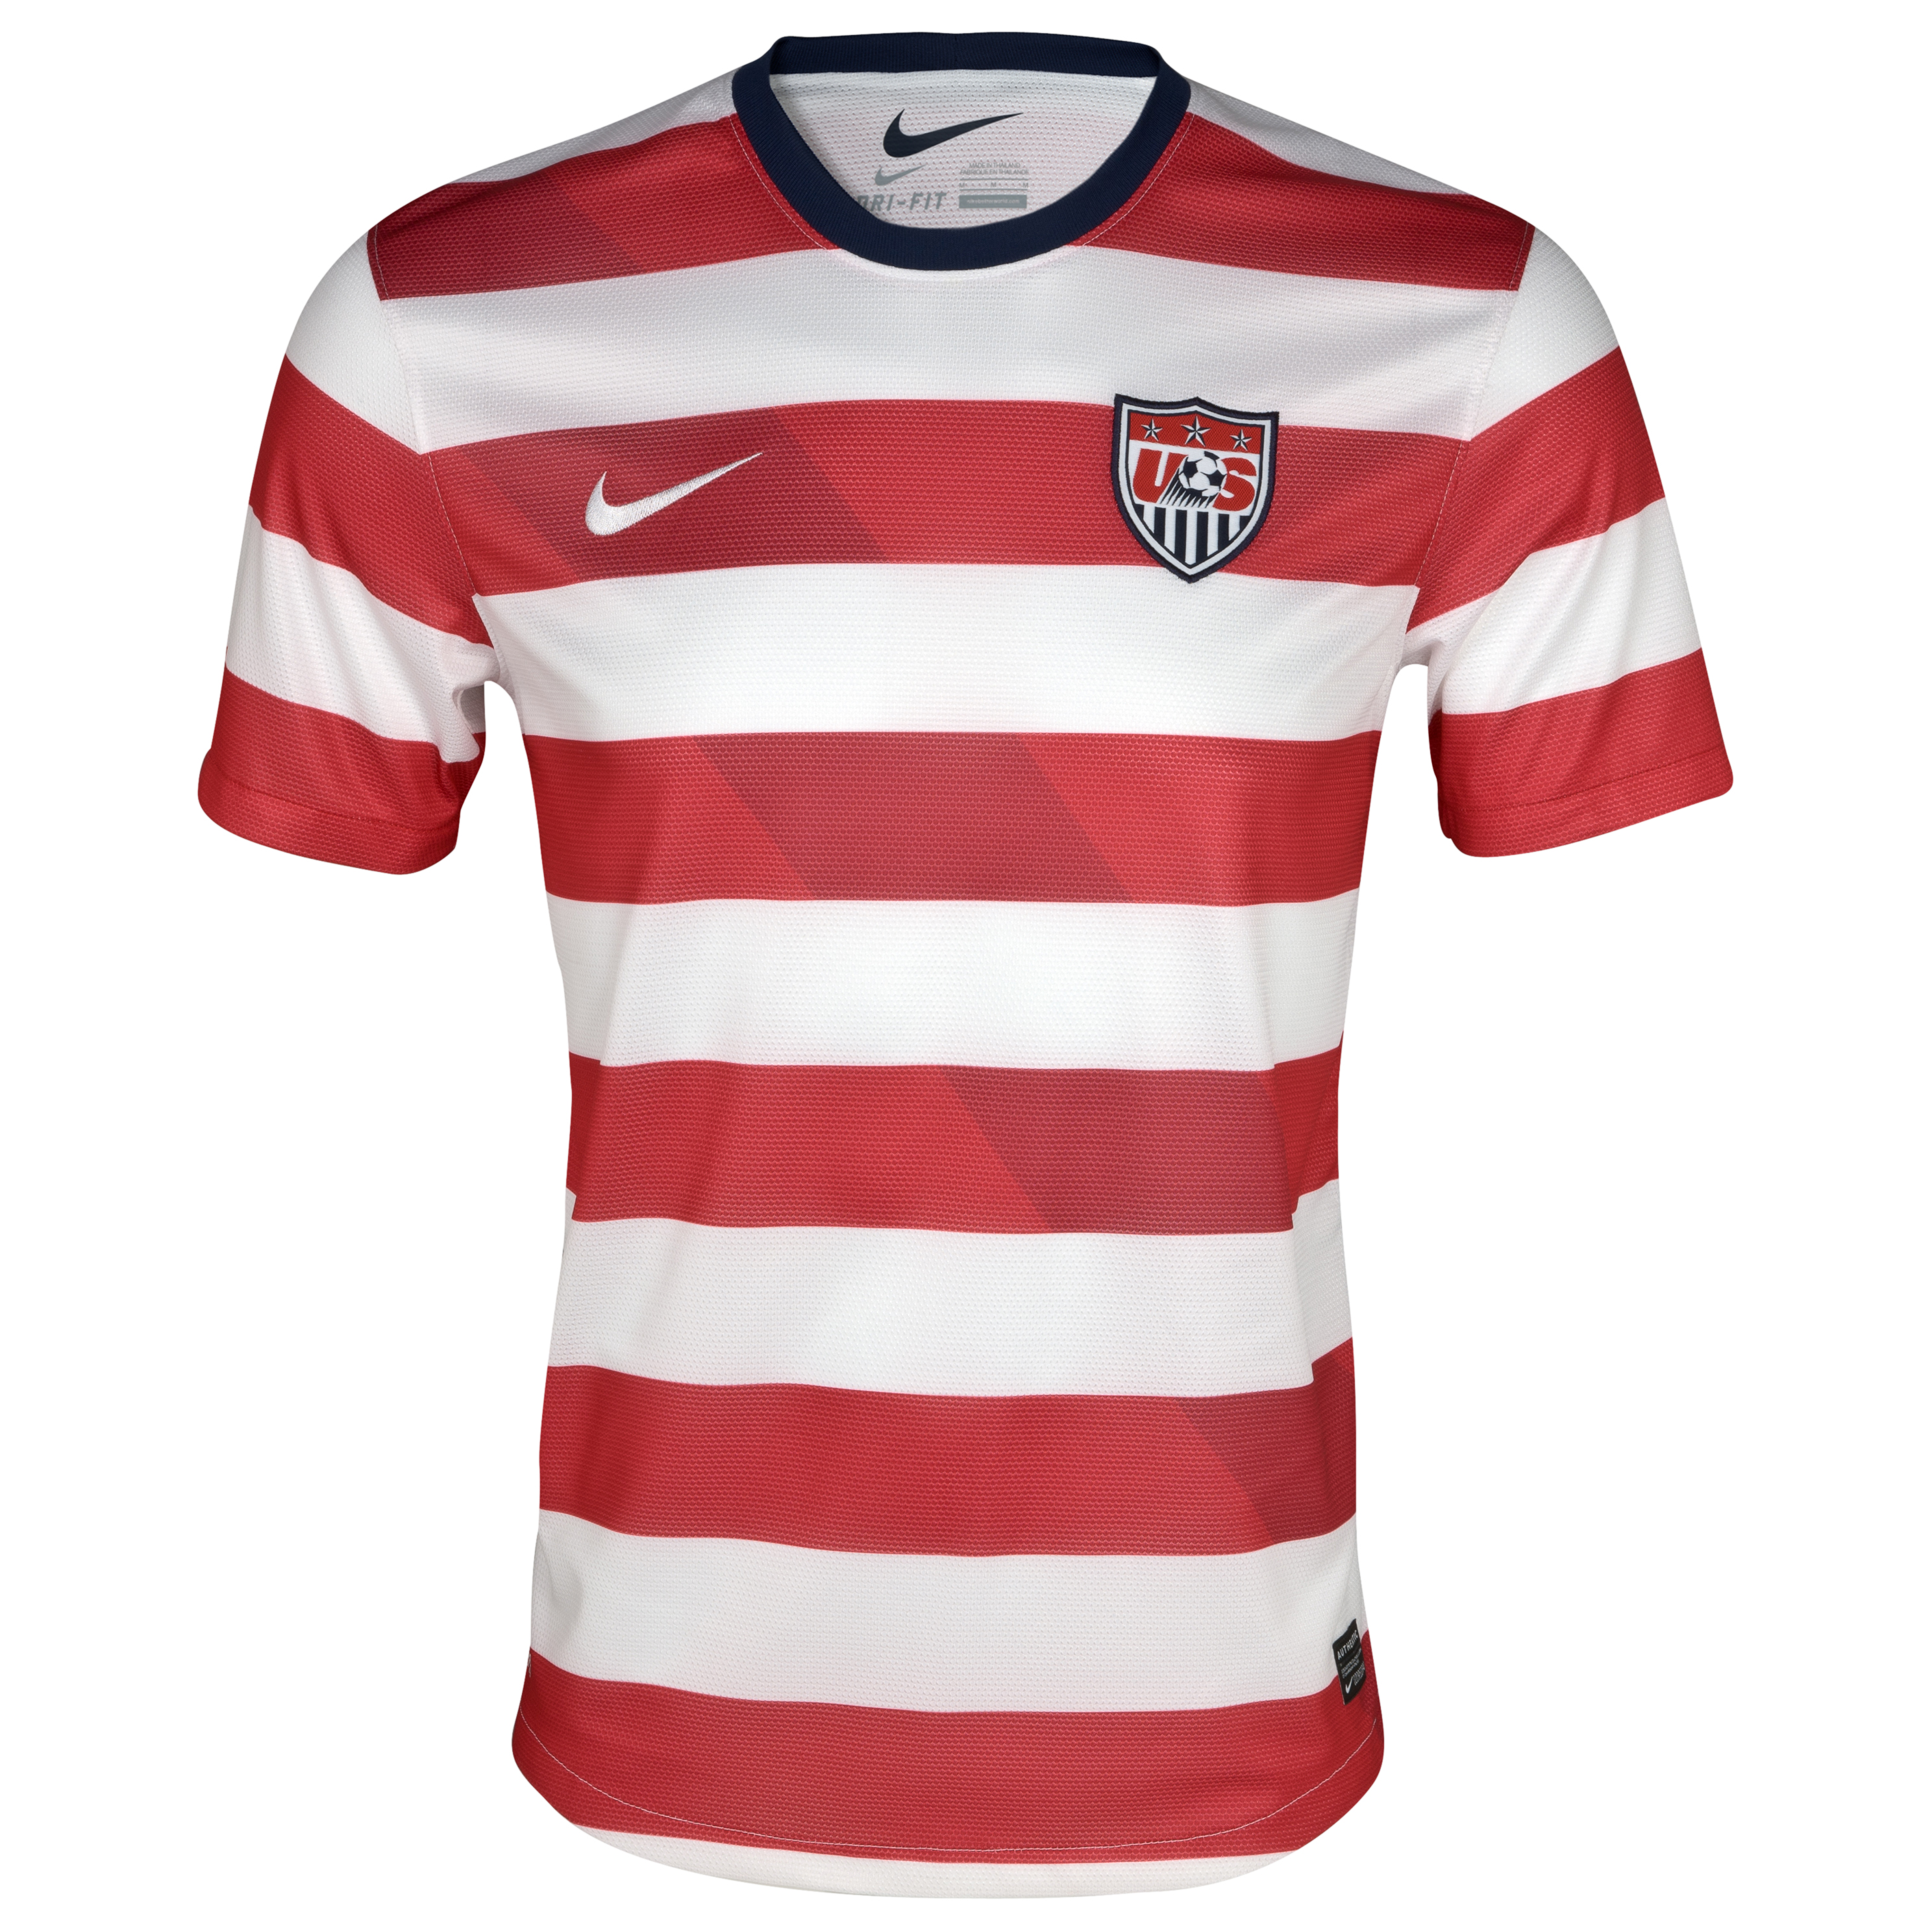 USA Home Shirt 2012/13